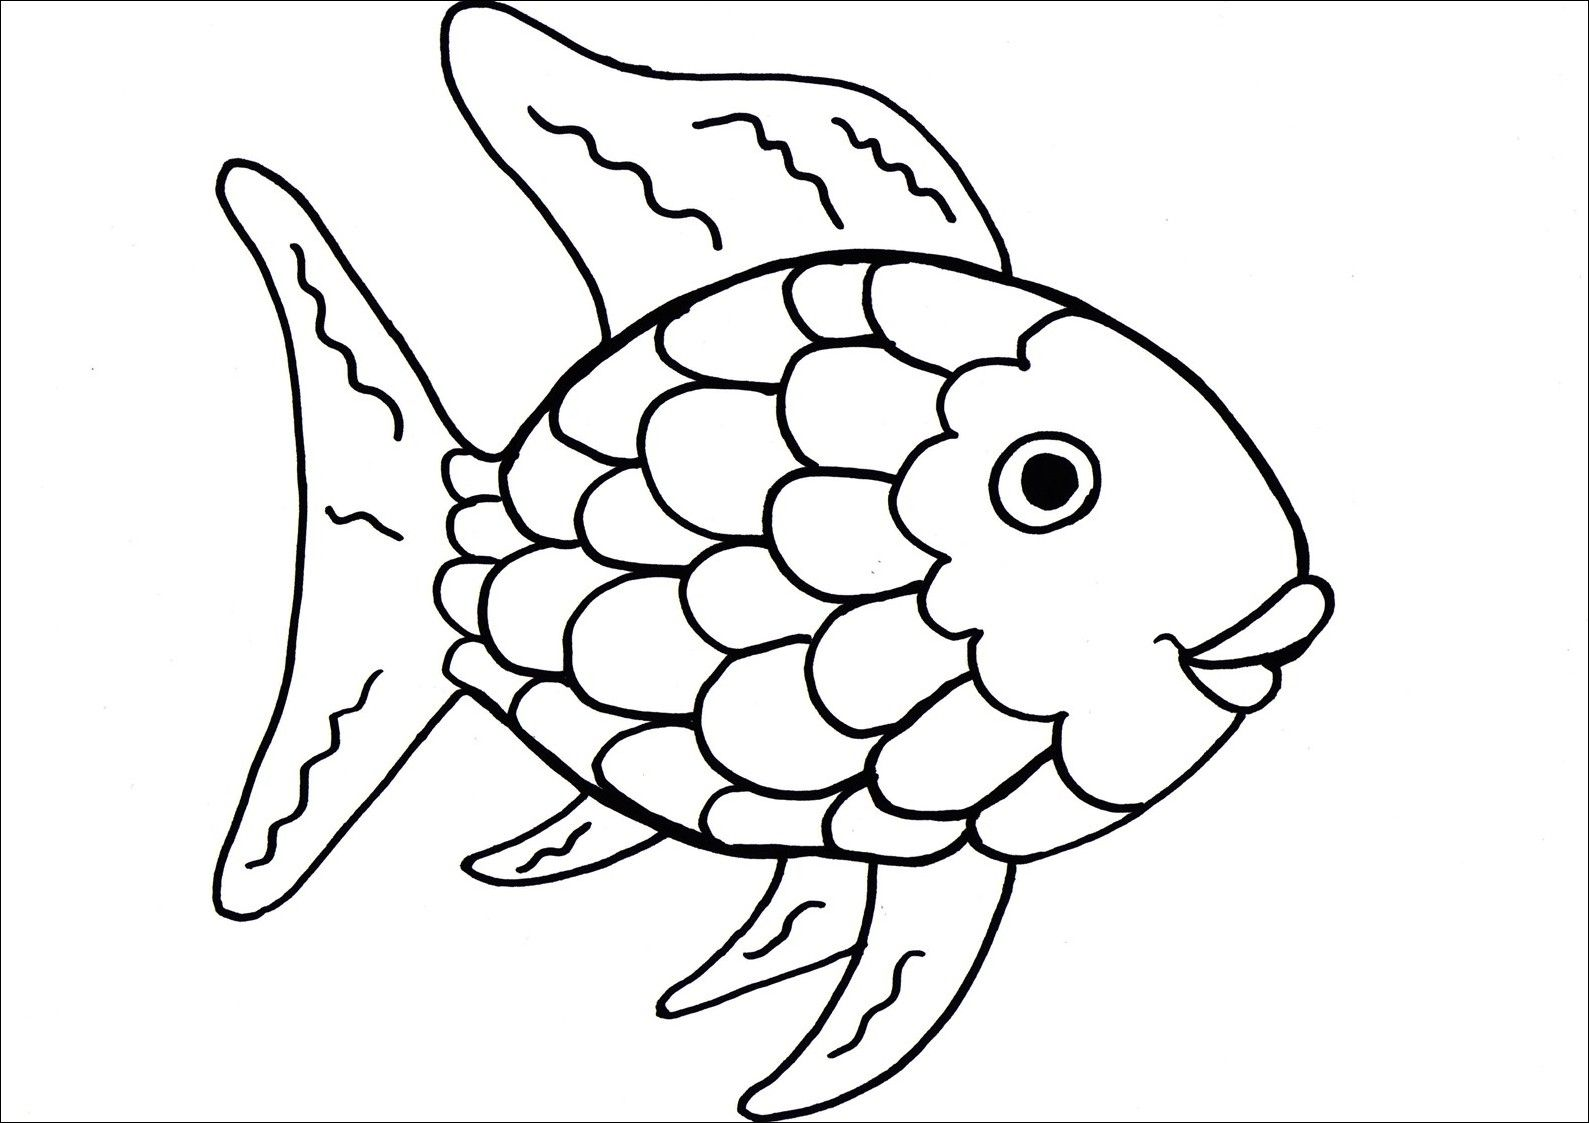 Rainbow Fish Coloring Pages Rainbow Fish Coloring Page Rainbow Fish Template Rainbow Fish Crafts